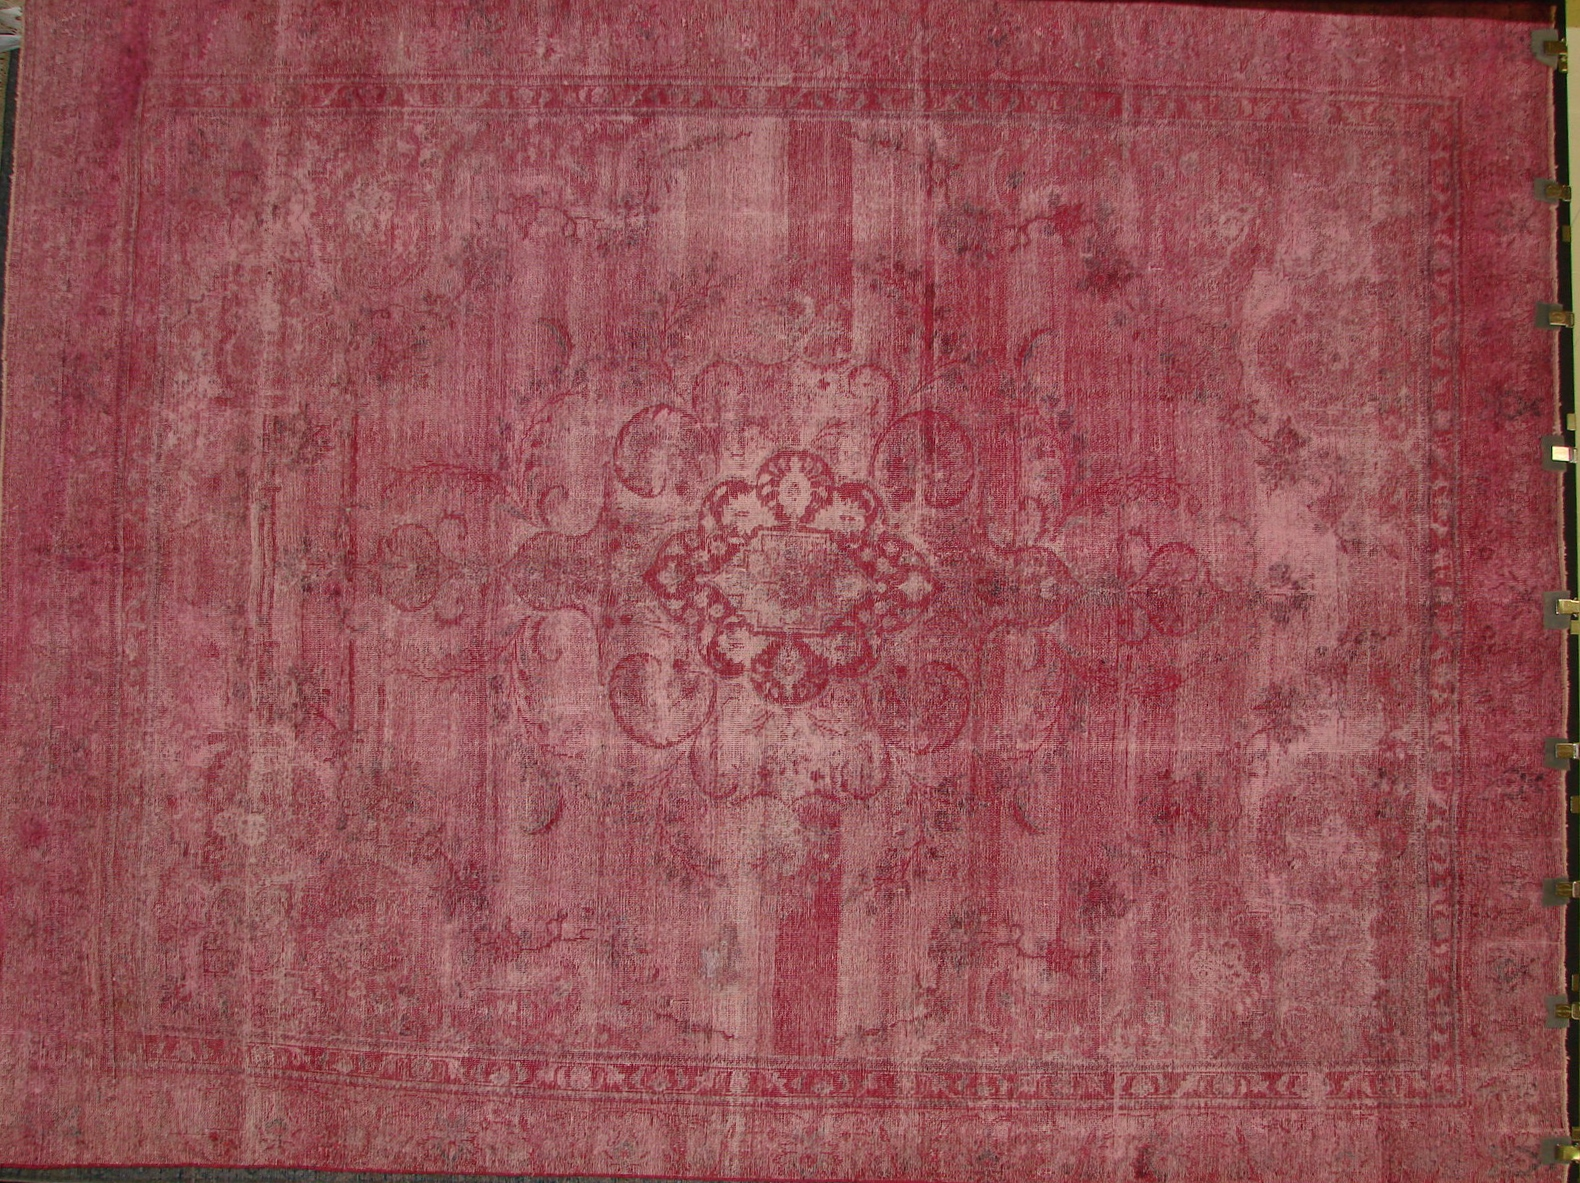 9x12 Vintage Hand Knotted Wool Area Rug - MR17292